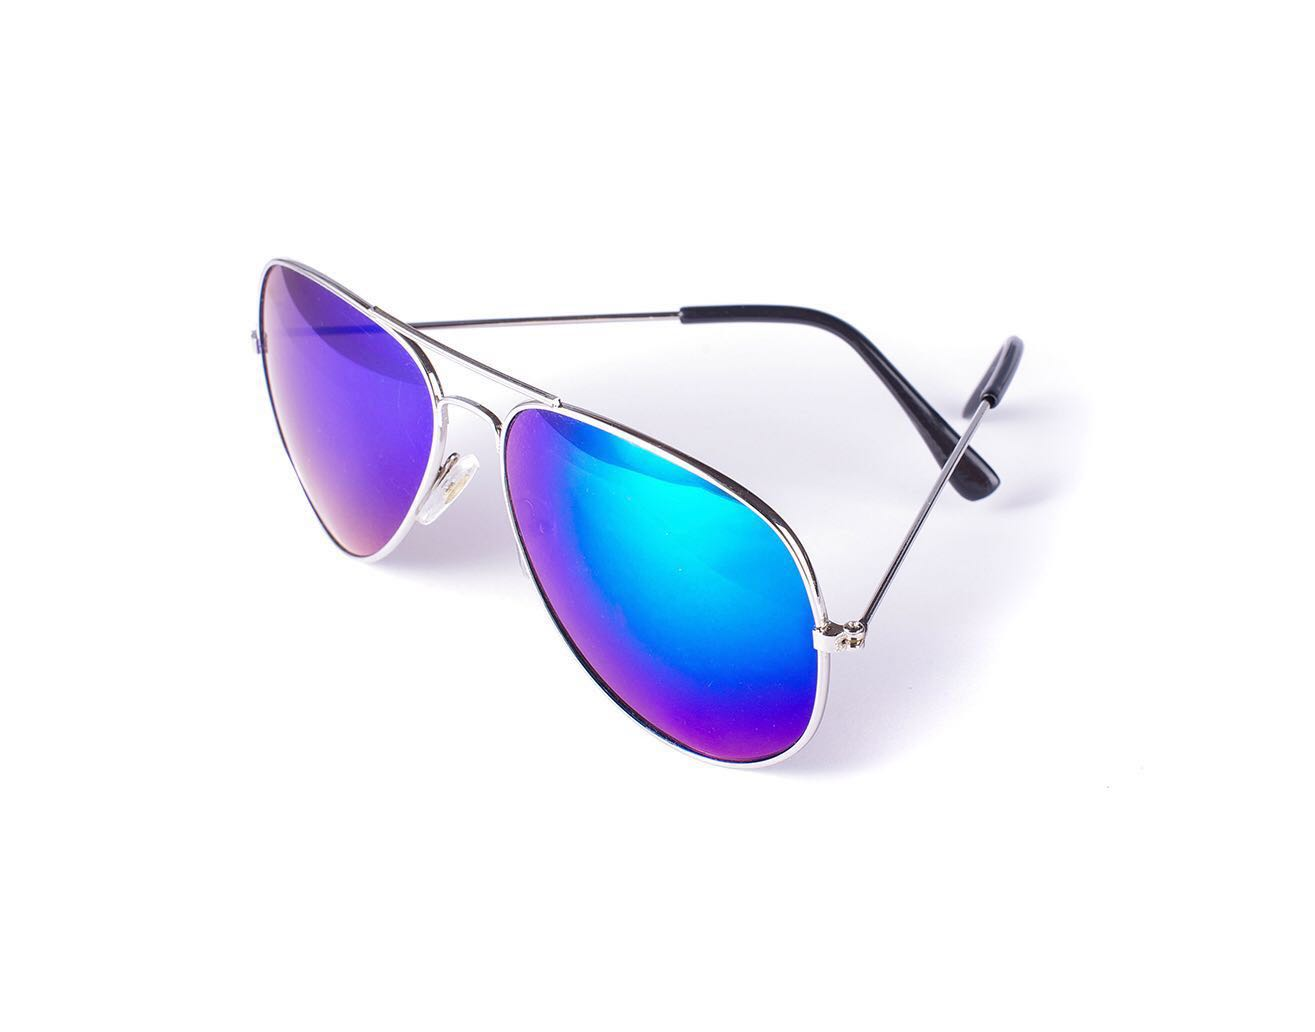 b92cbf12b635 Silver Sunglasses with Mirrored Lens